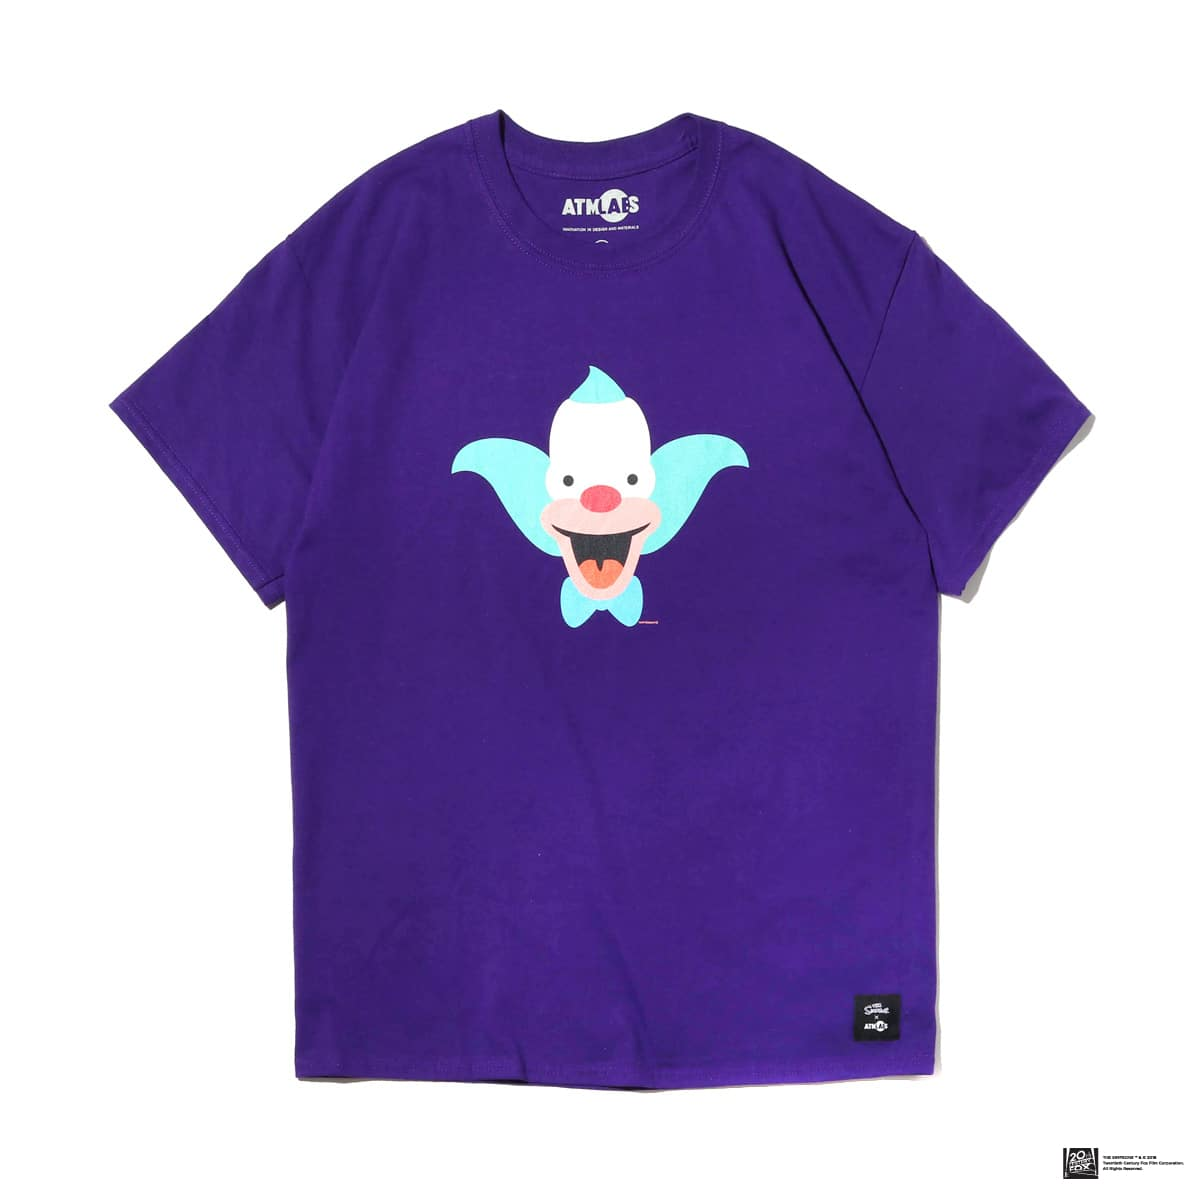 ATMOS LAB THE SIMPSONS x ATMOS LAB KRUSTY TEE  PURPLE_photo_large